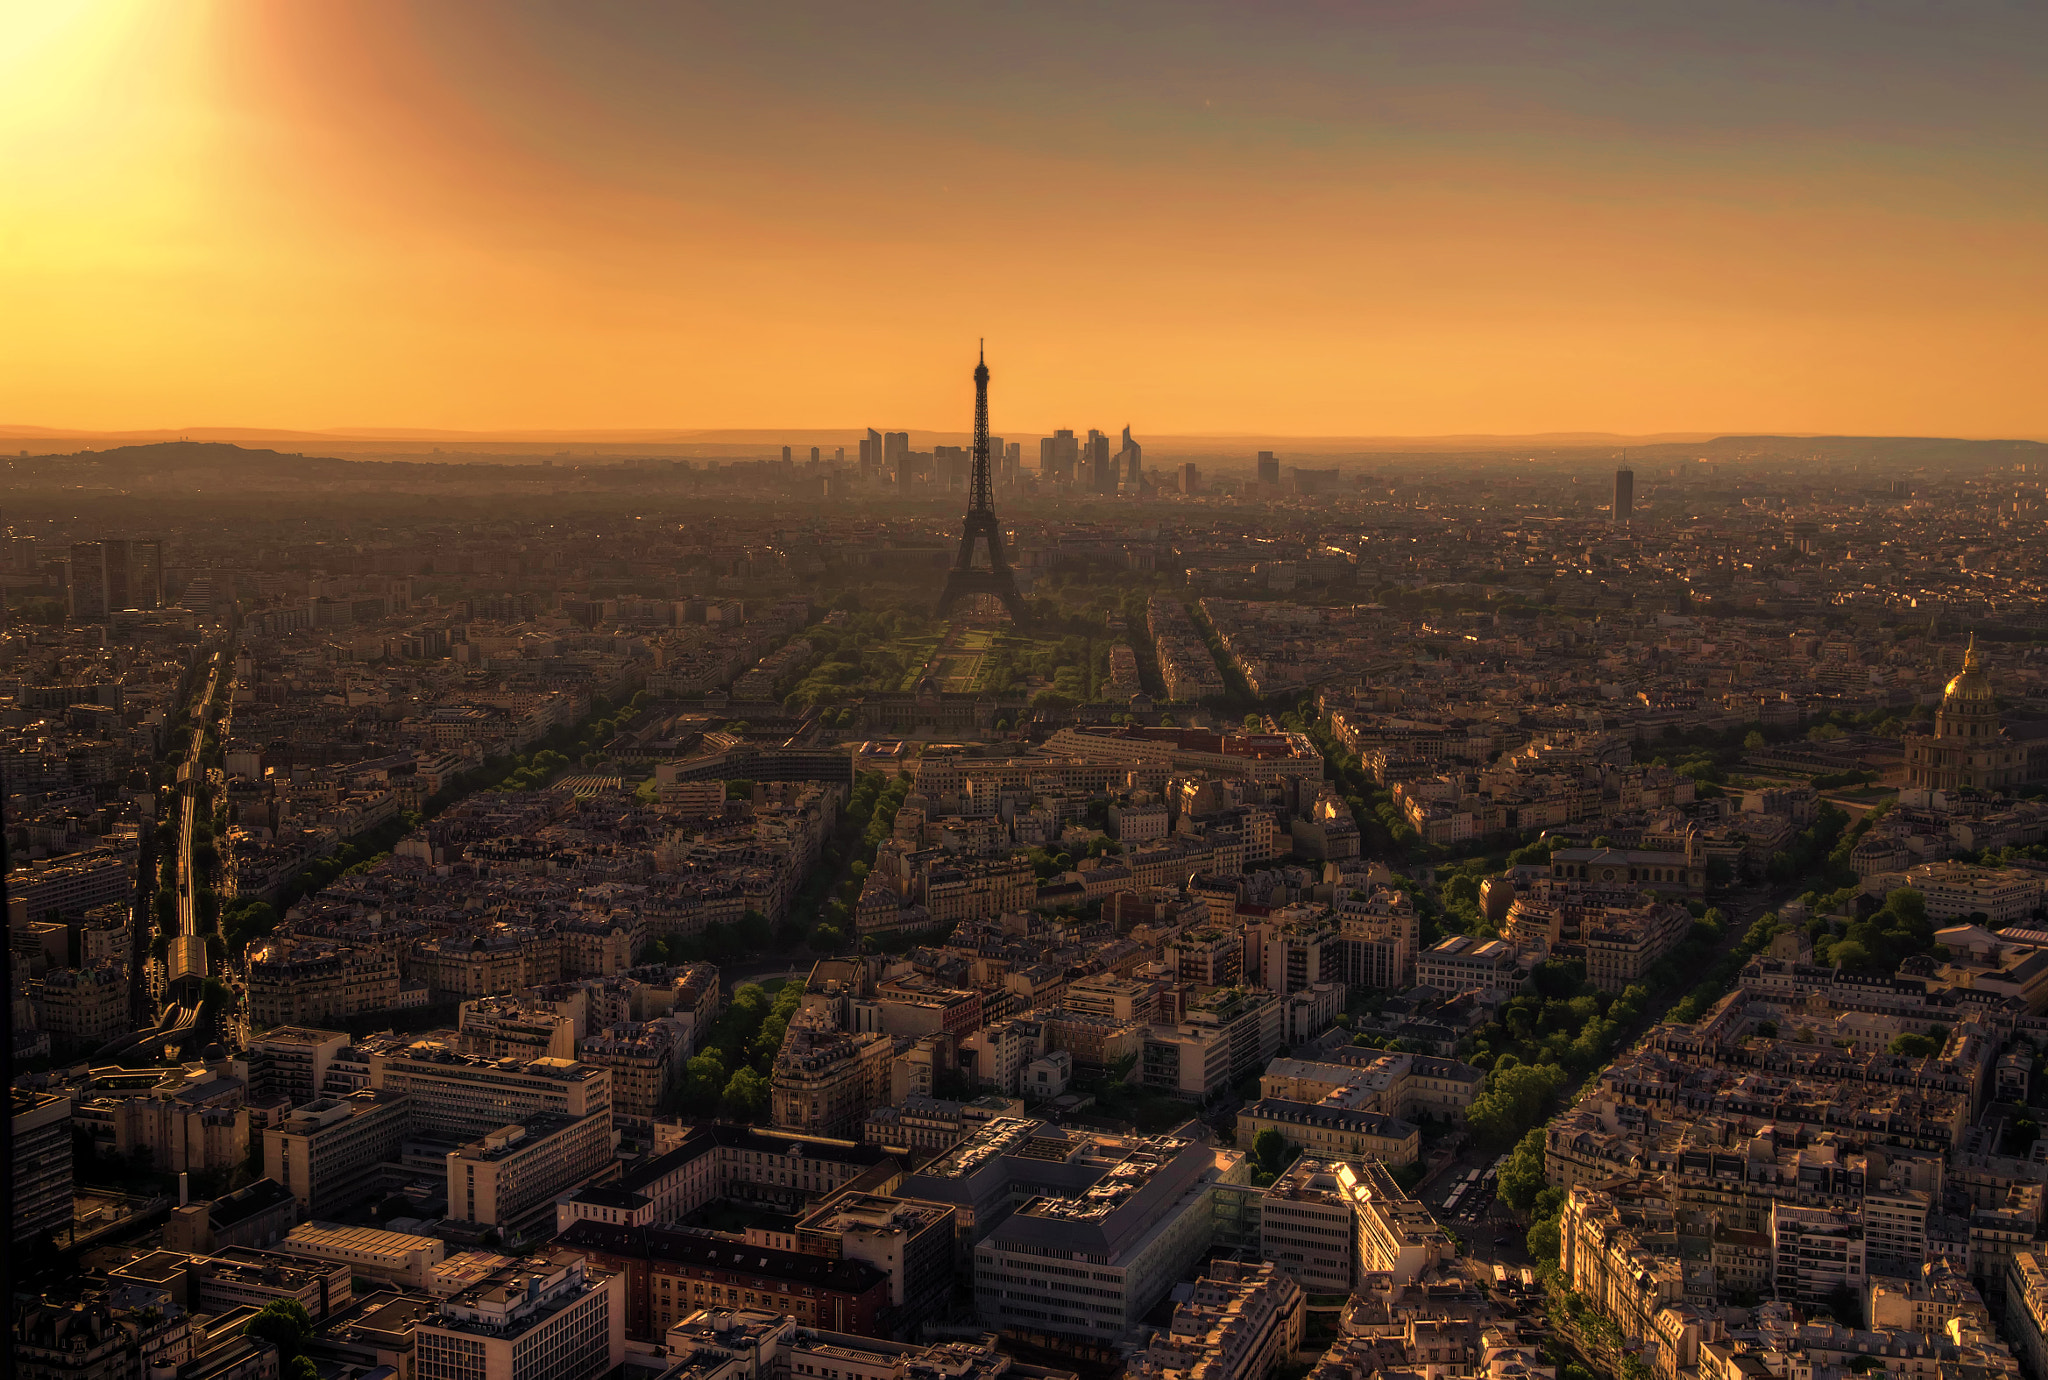 Photograph Sunset in Paris by Filippo Bianchi on 500px